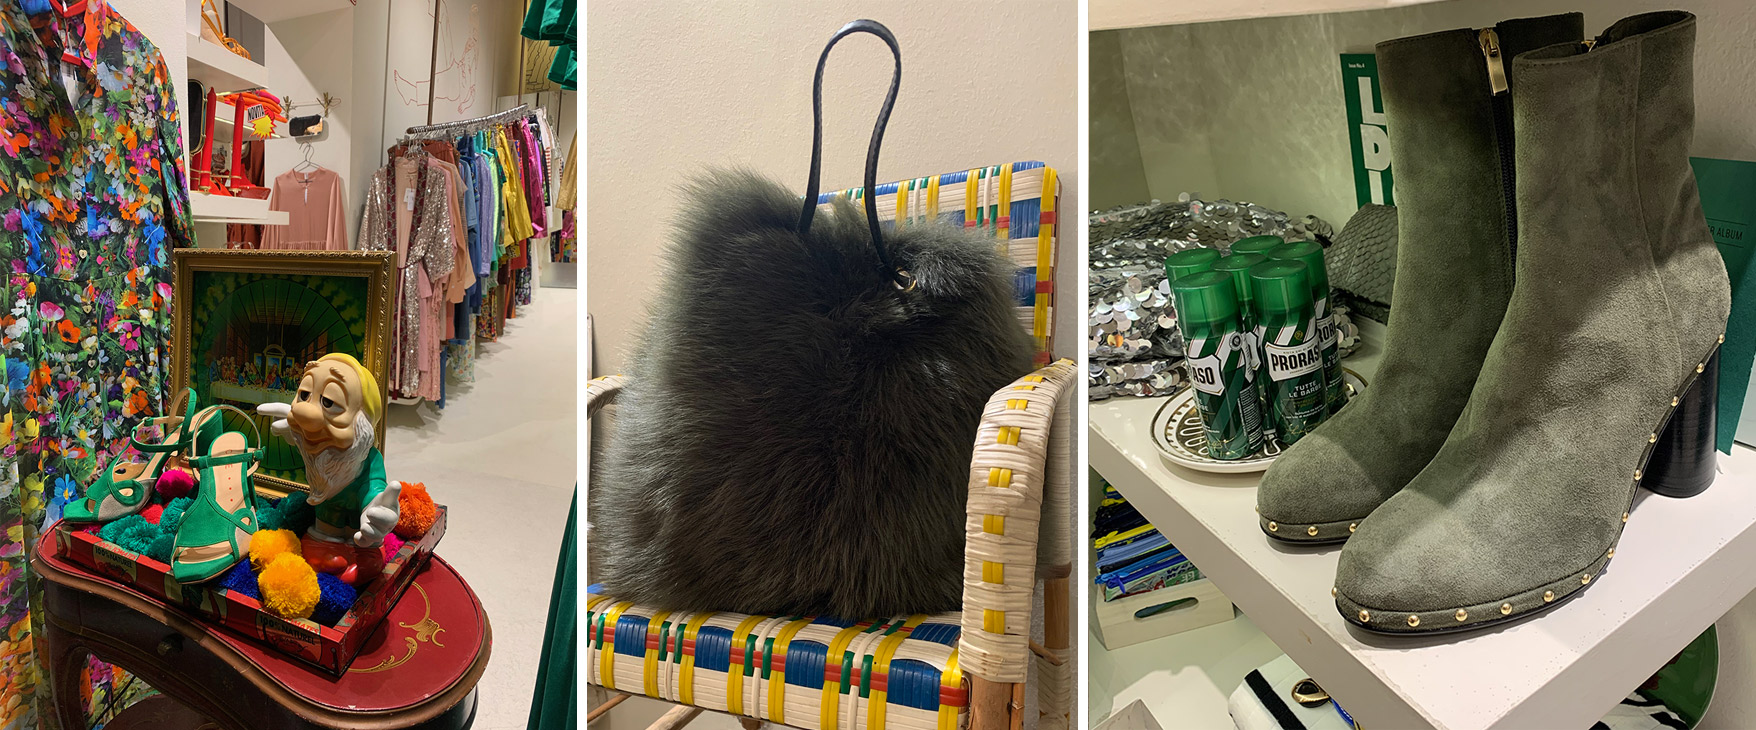 insolito-shopping-milanese-wait-and-see-verde